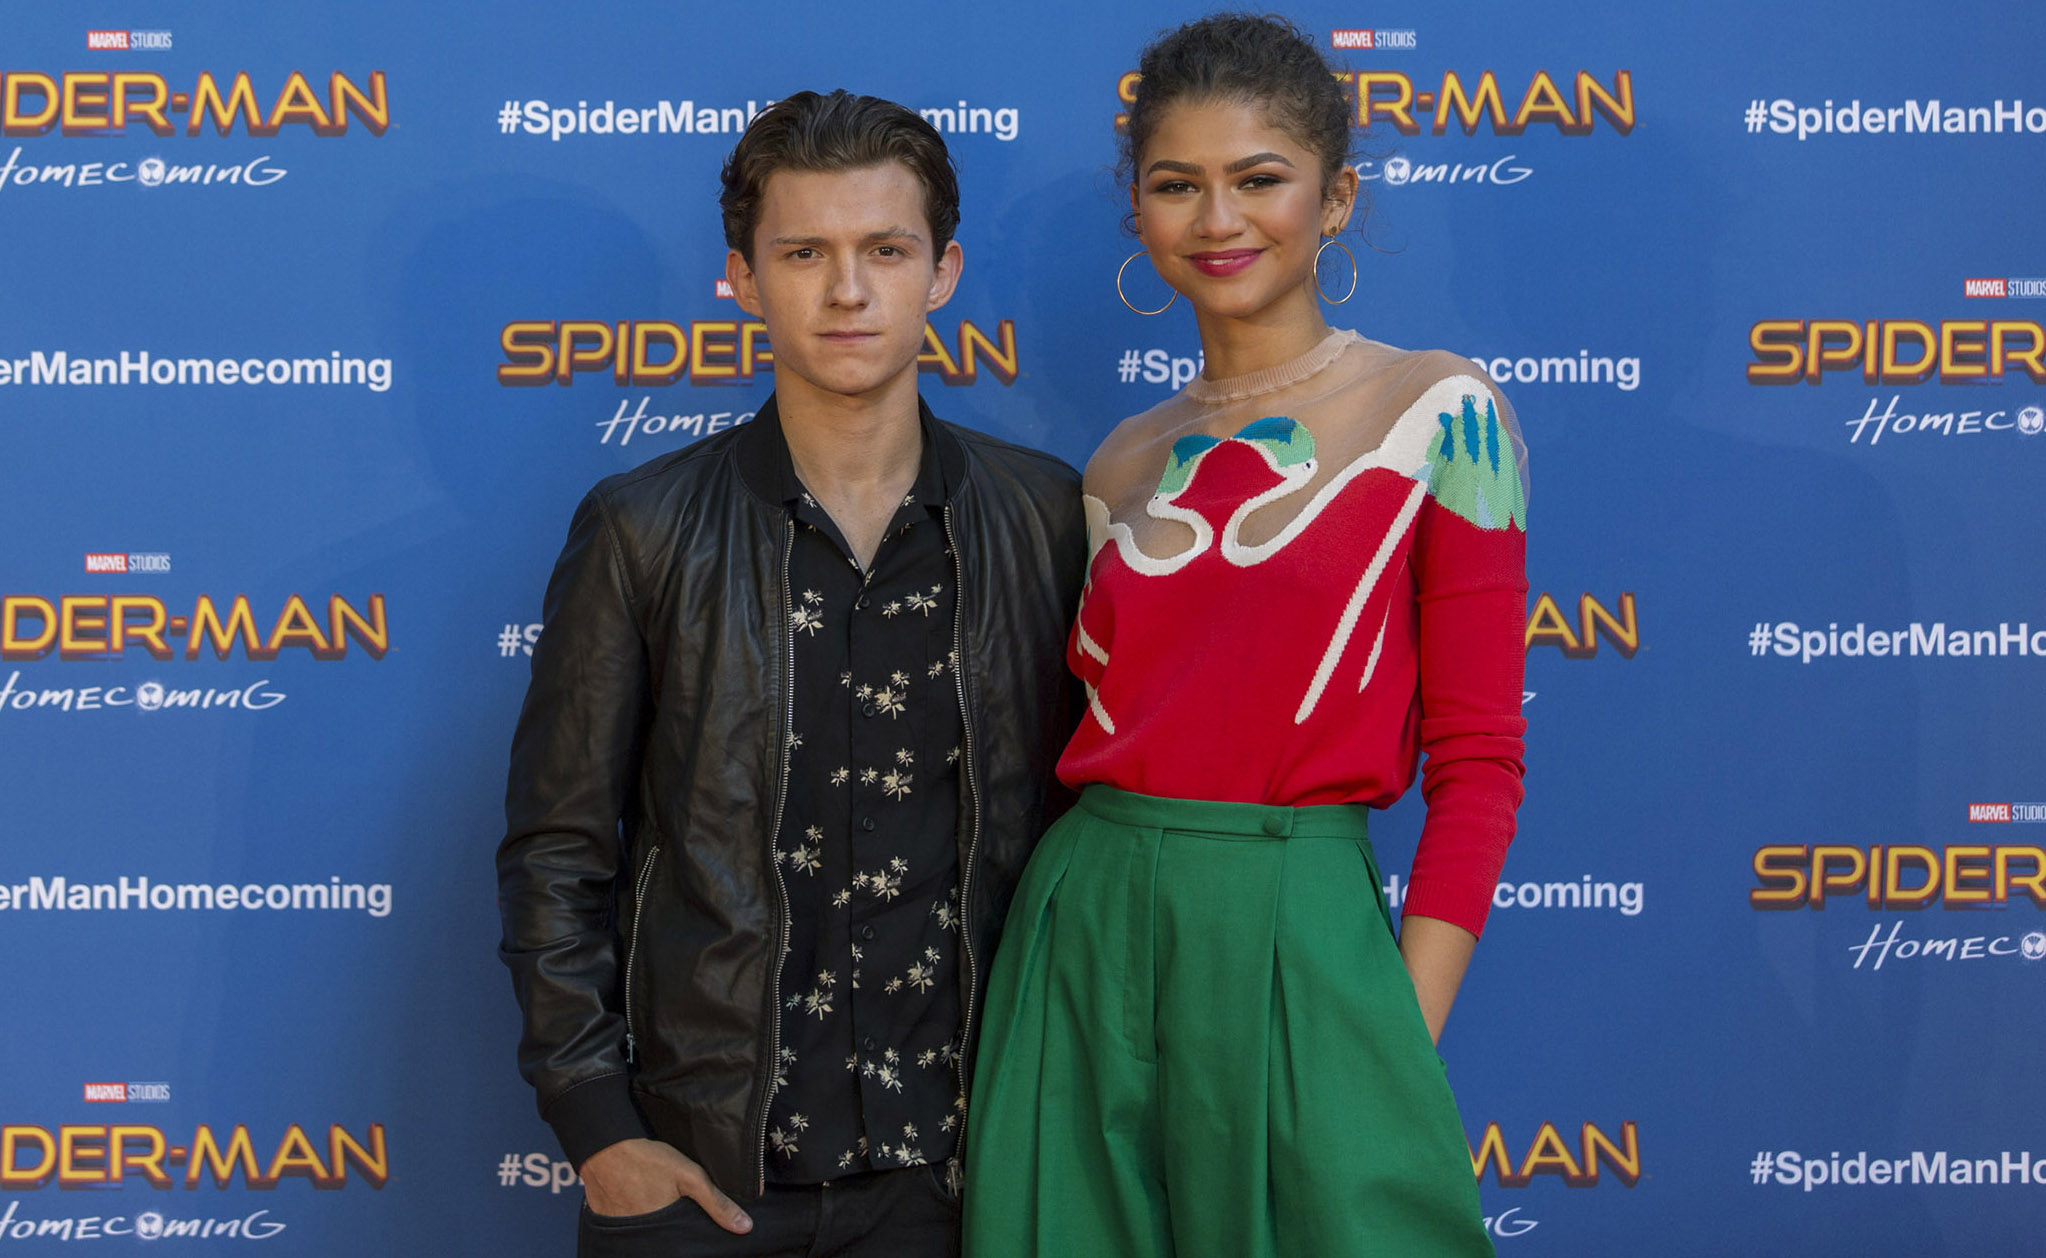 Zendaya Says She's Not Dating Spider-Man Co-Star Tom Holland